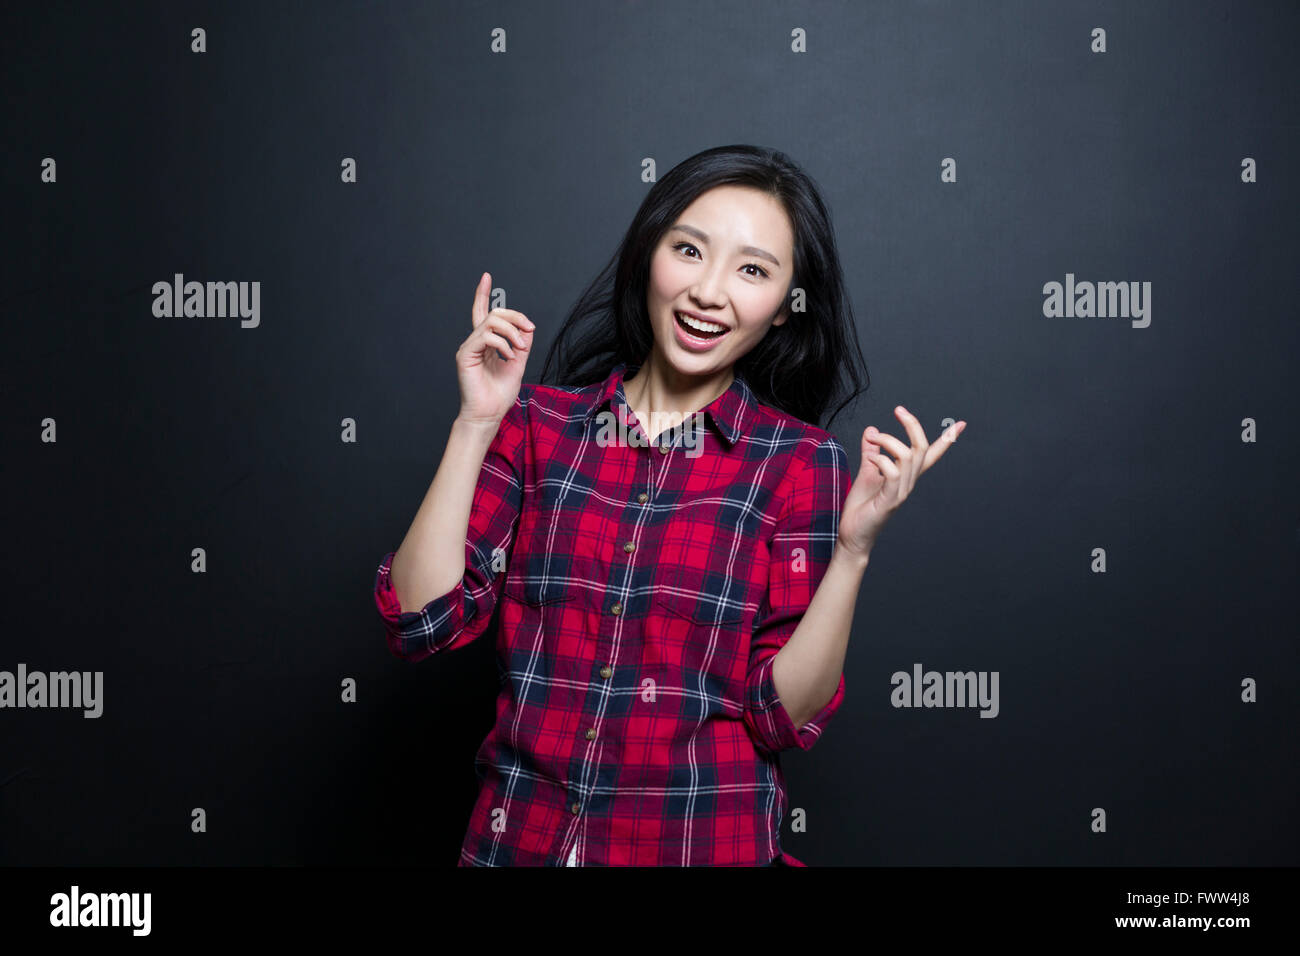 Excited young woman - Stock Image